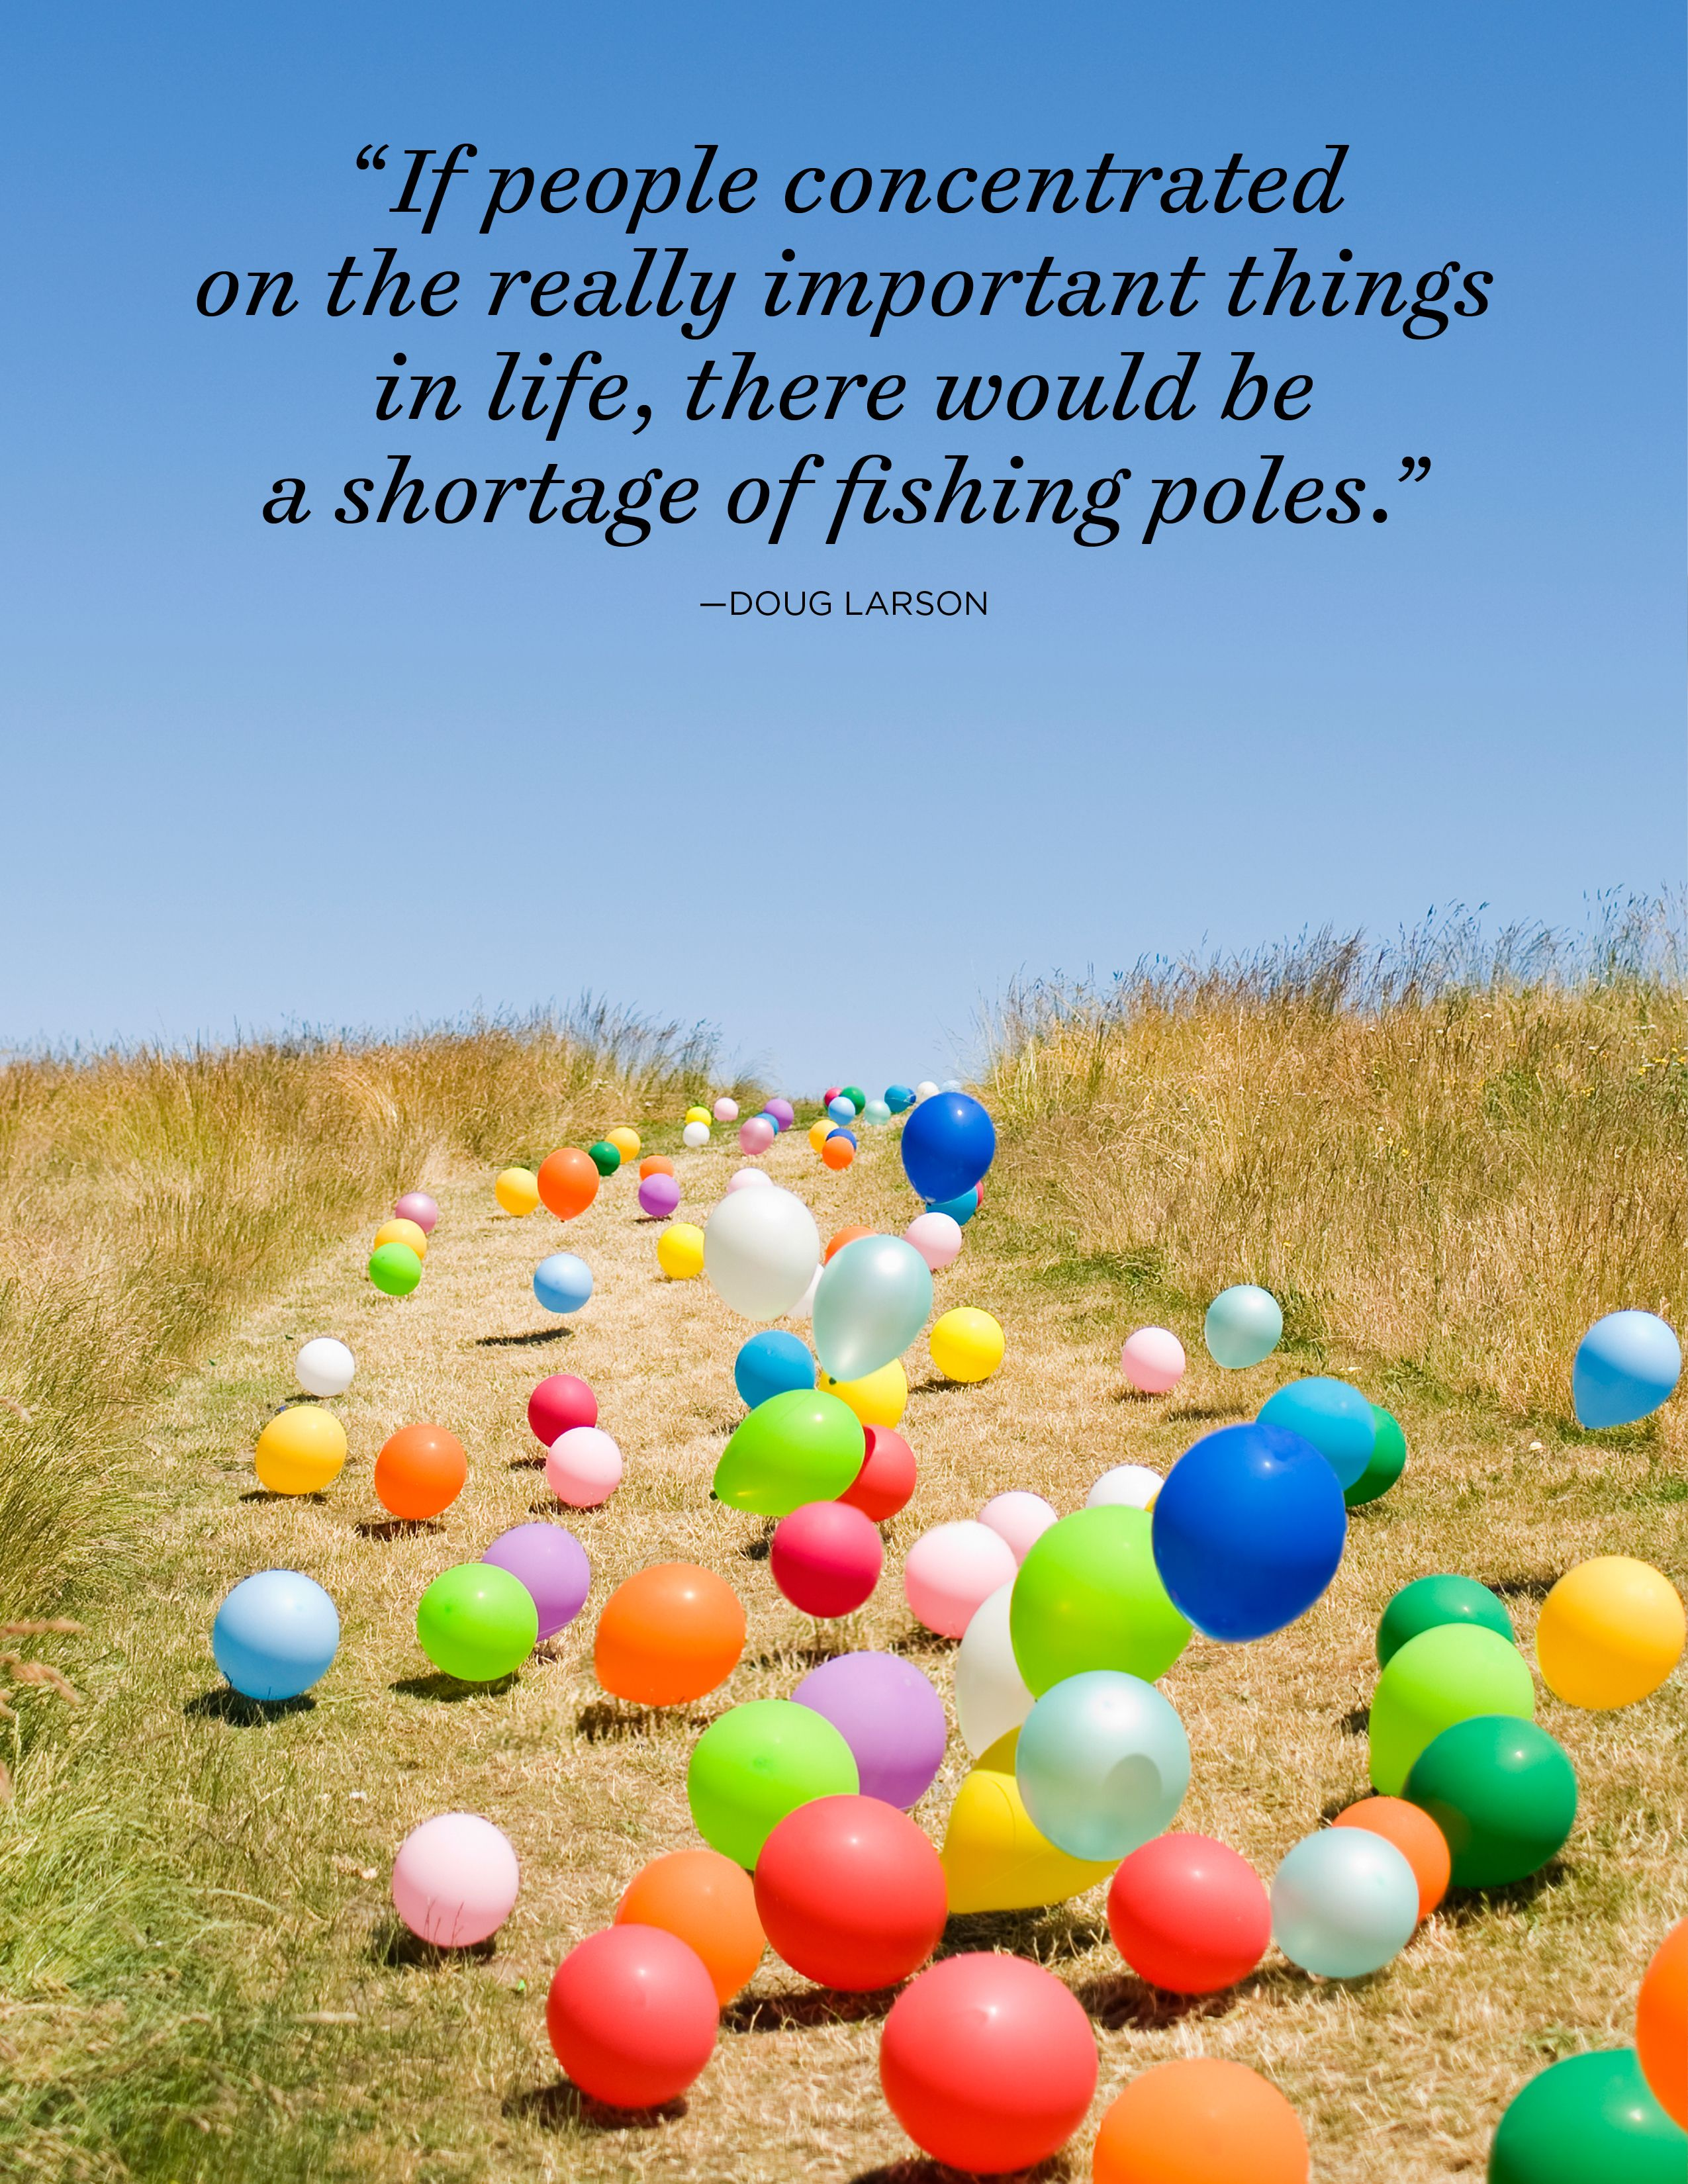 8 Great Retirement Quotes - Funny and Inspirational Quotes About